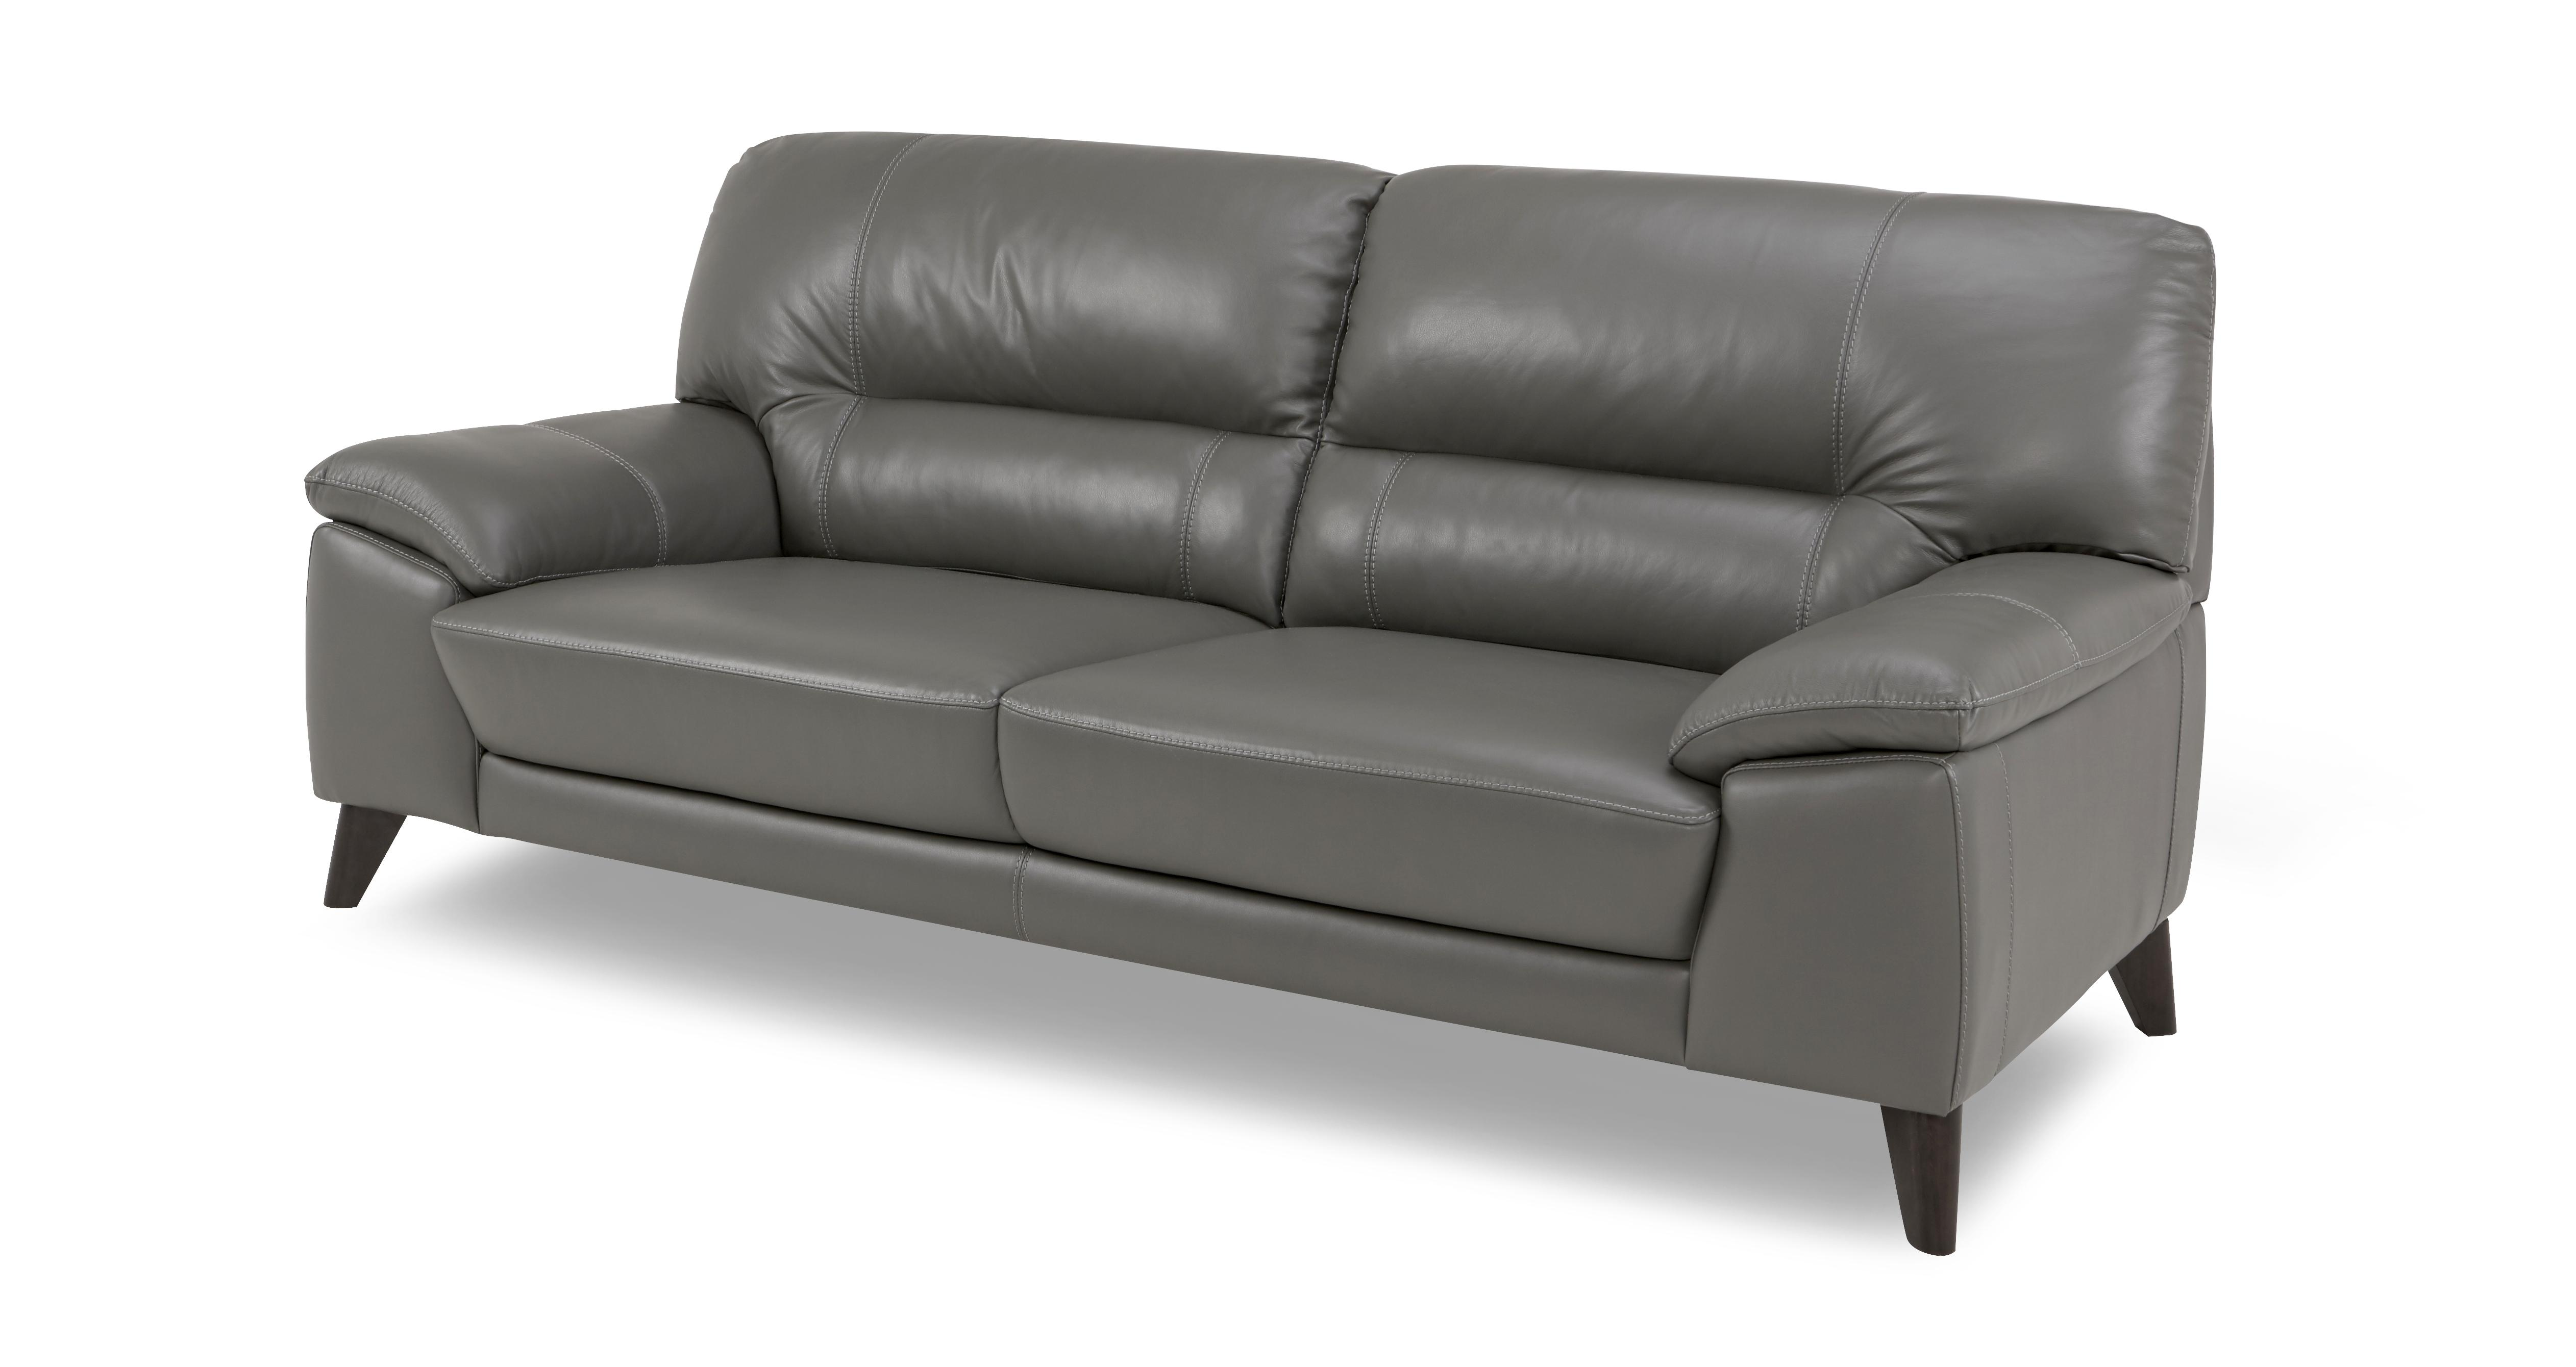 3 seater leather sofa dfs benson beds trident graphite grey ebay